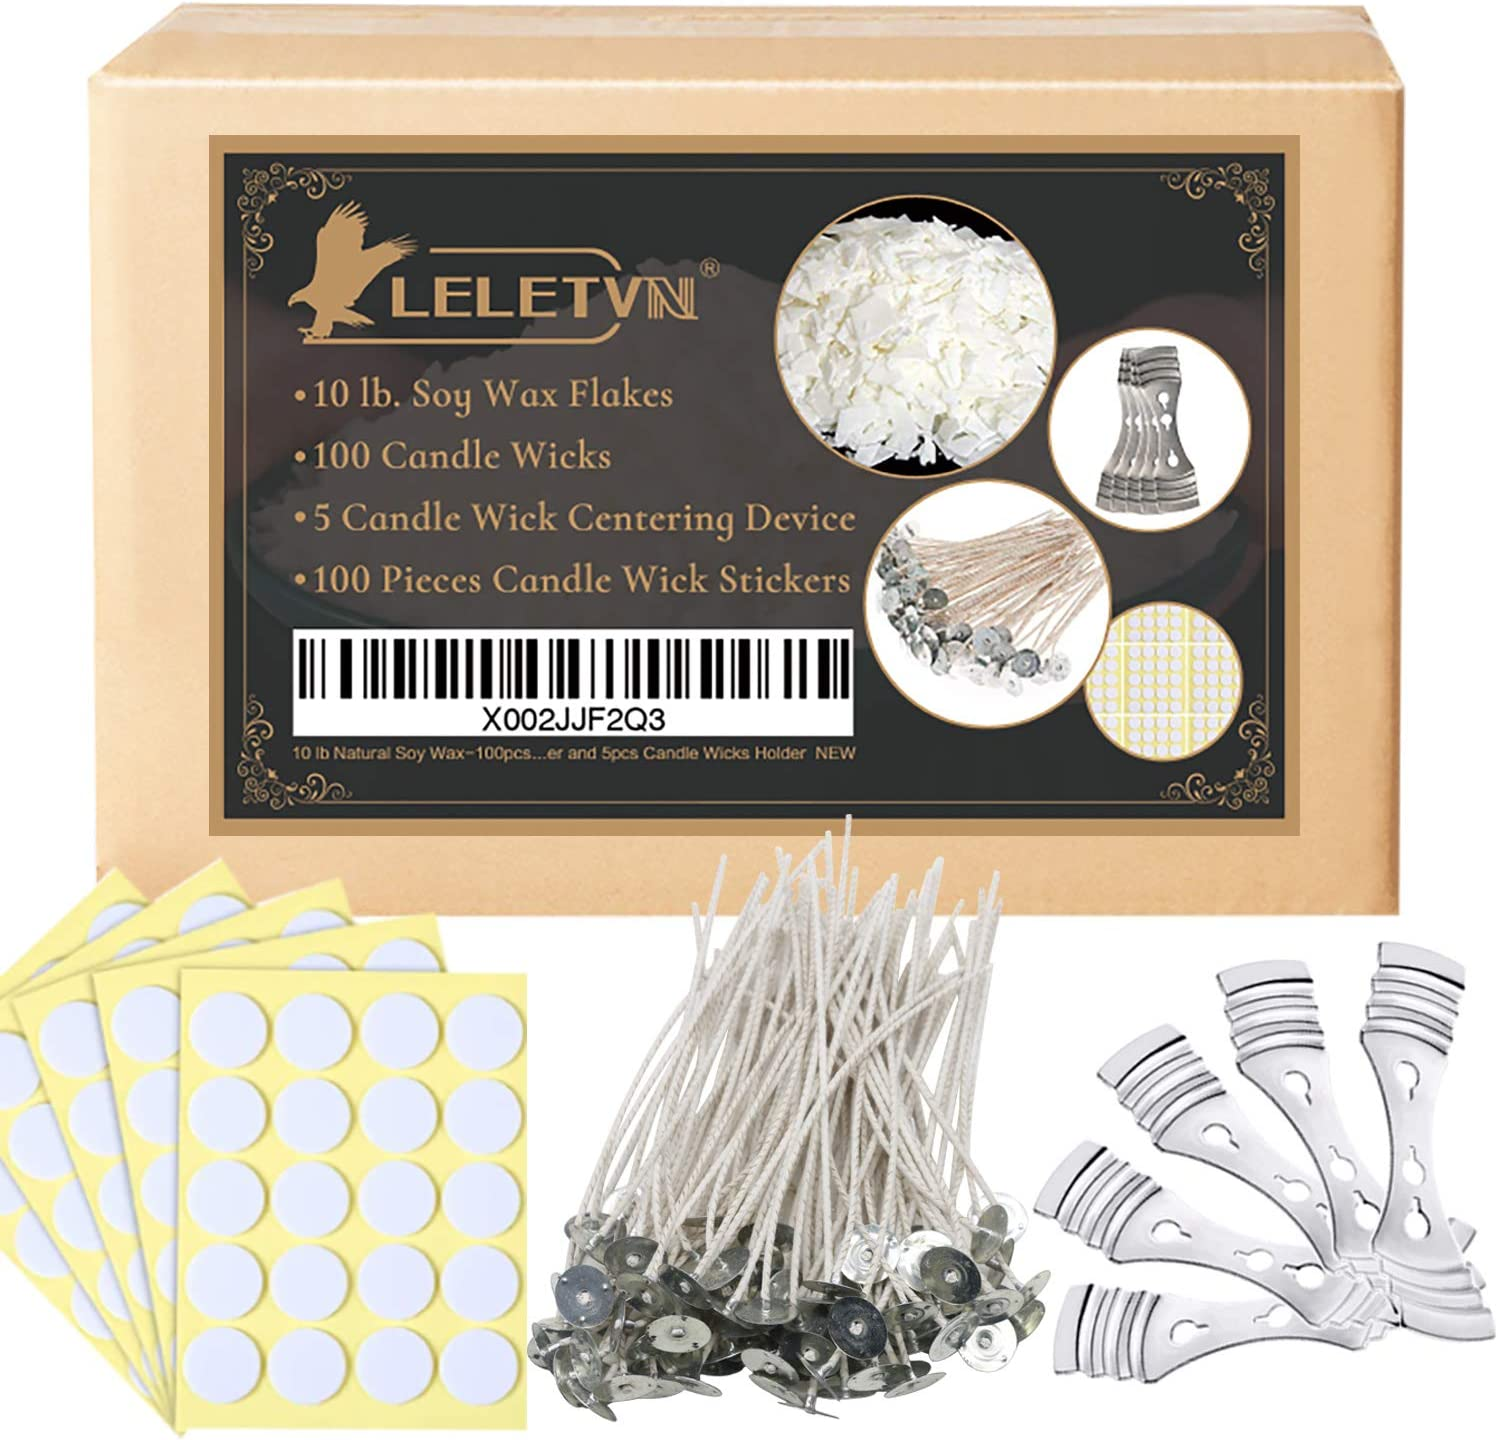 LELETVN Candle Making Supplies CMK1910 Include 10LB Natural Soy Wax /& 100pcs Candle Wicks /& 100pcs Candle Wick Stickers /& 5pcs Candle Wick Centering Device Candle Making Kit for Adults